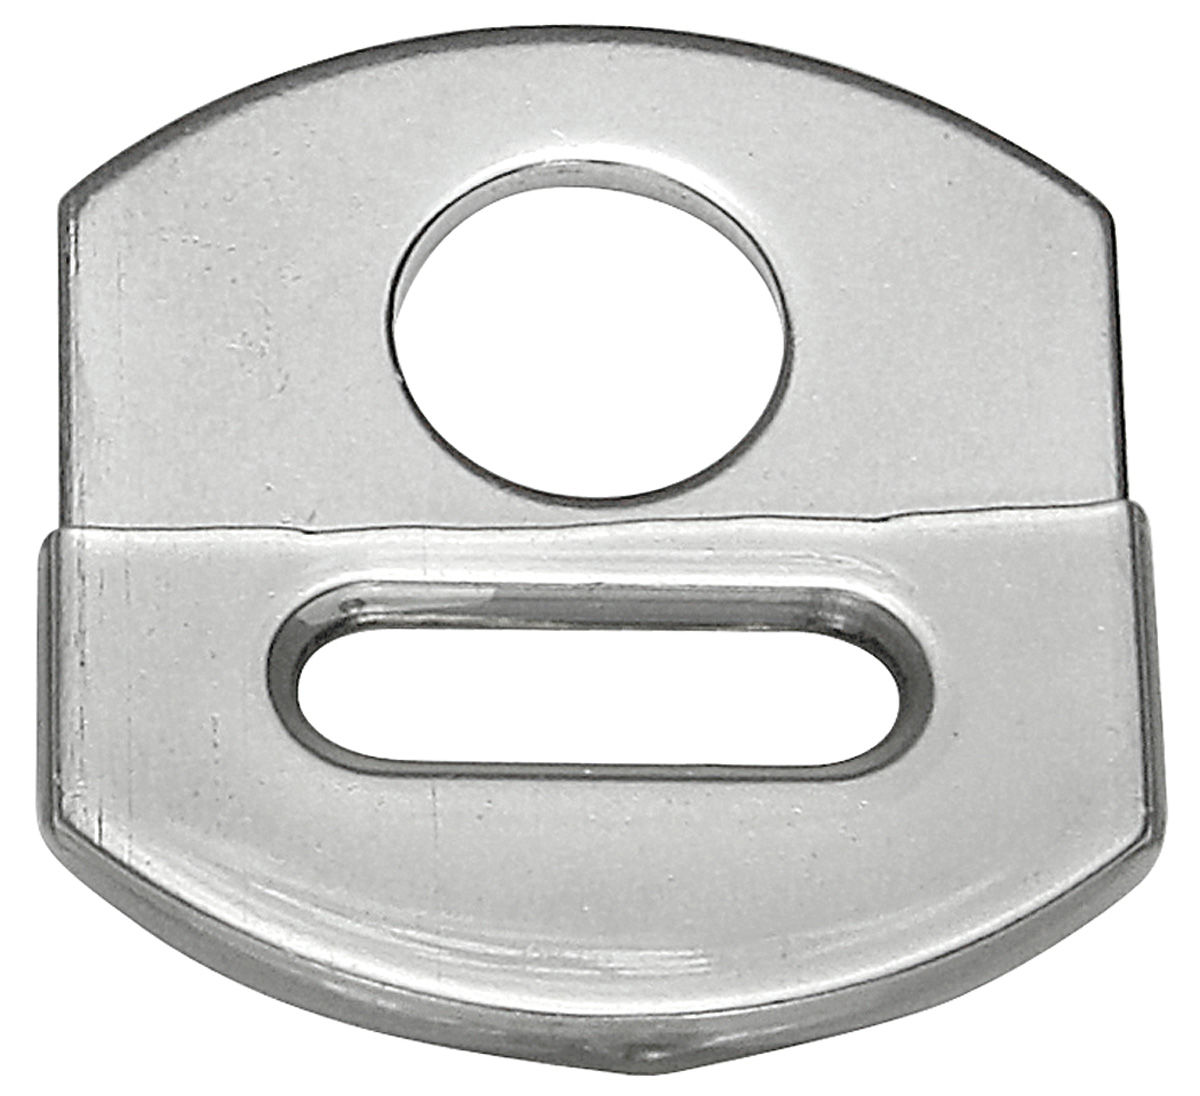 Anchor Plate, Seat Belt, 1968-74 GM, Stainless Steel